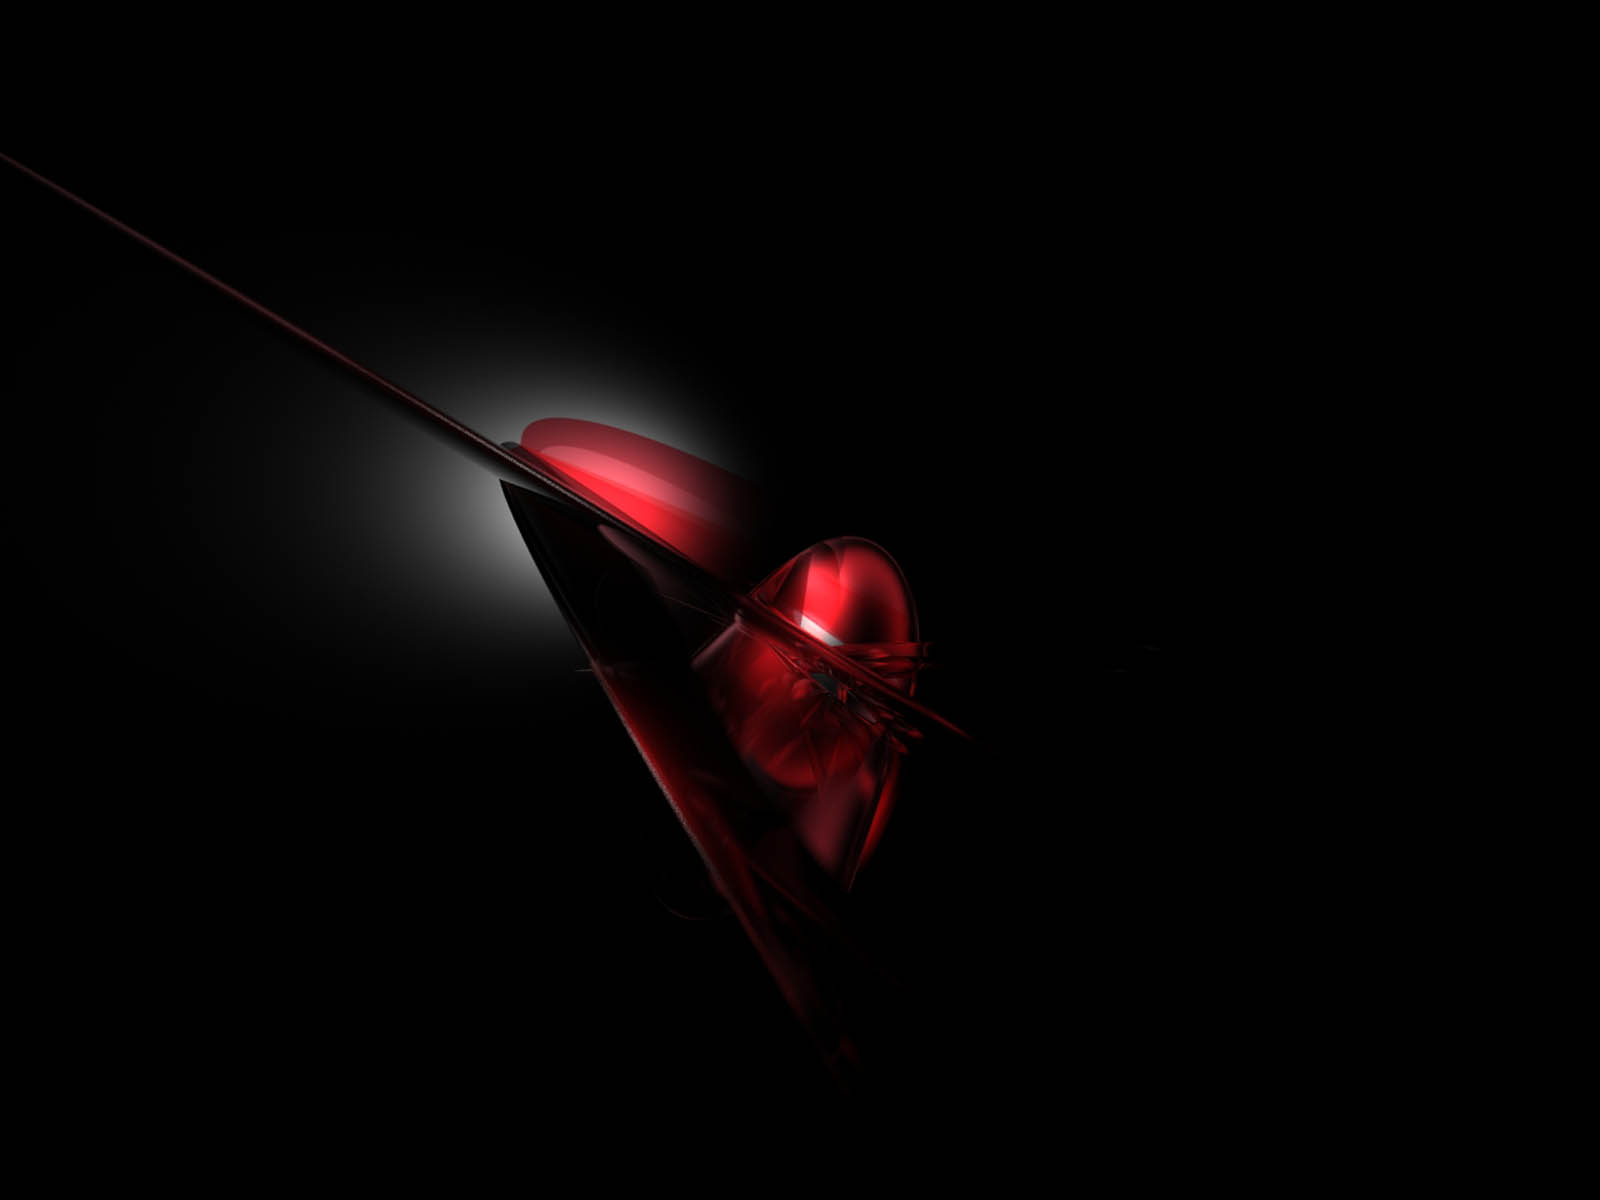 Keywords: Dark 3D Wallpapers, Dark 3D Desktop Wallpapers, Dark 3D